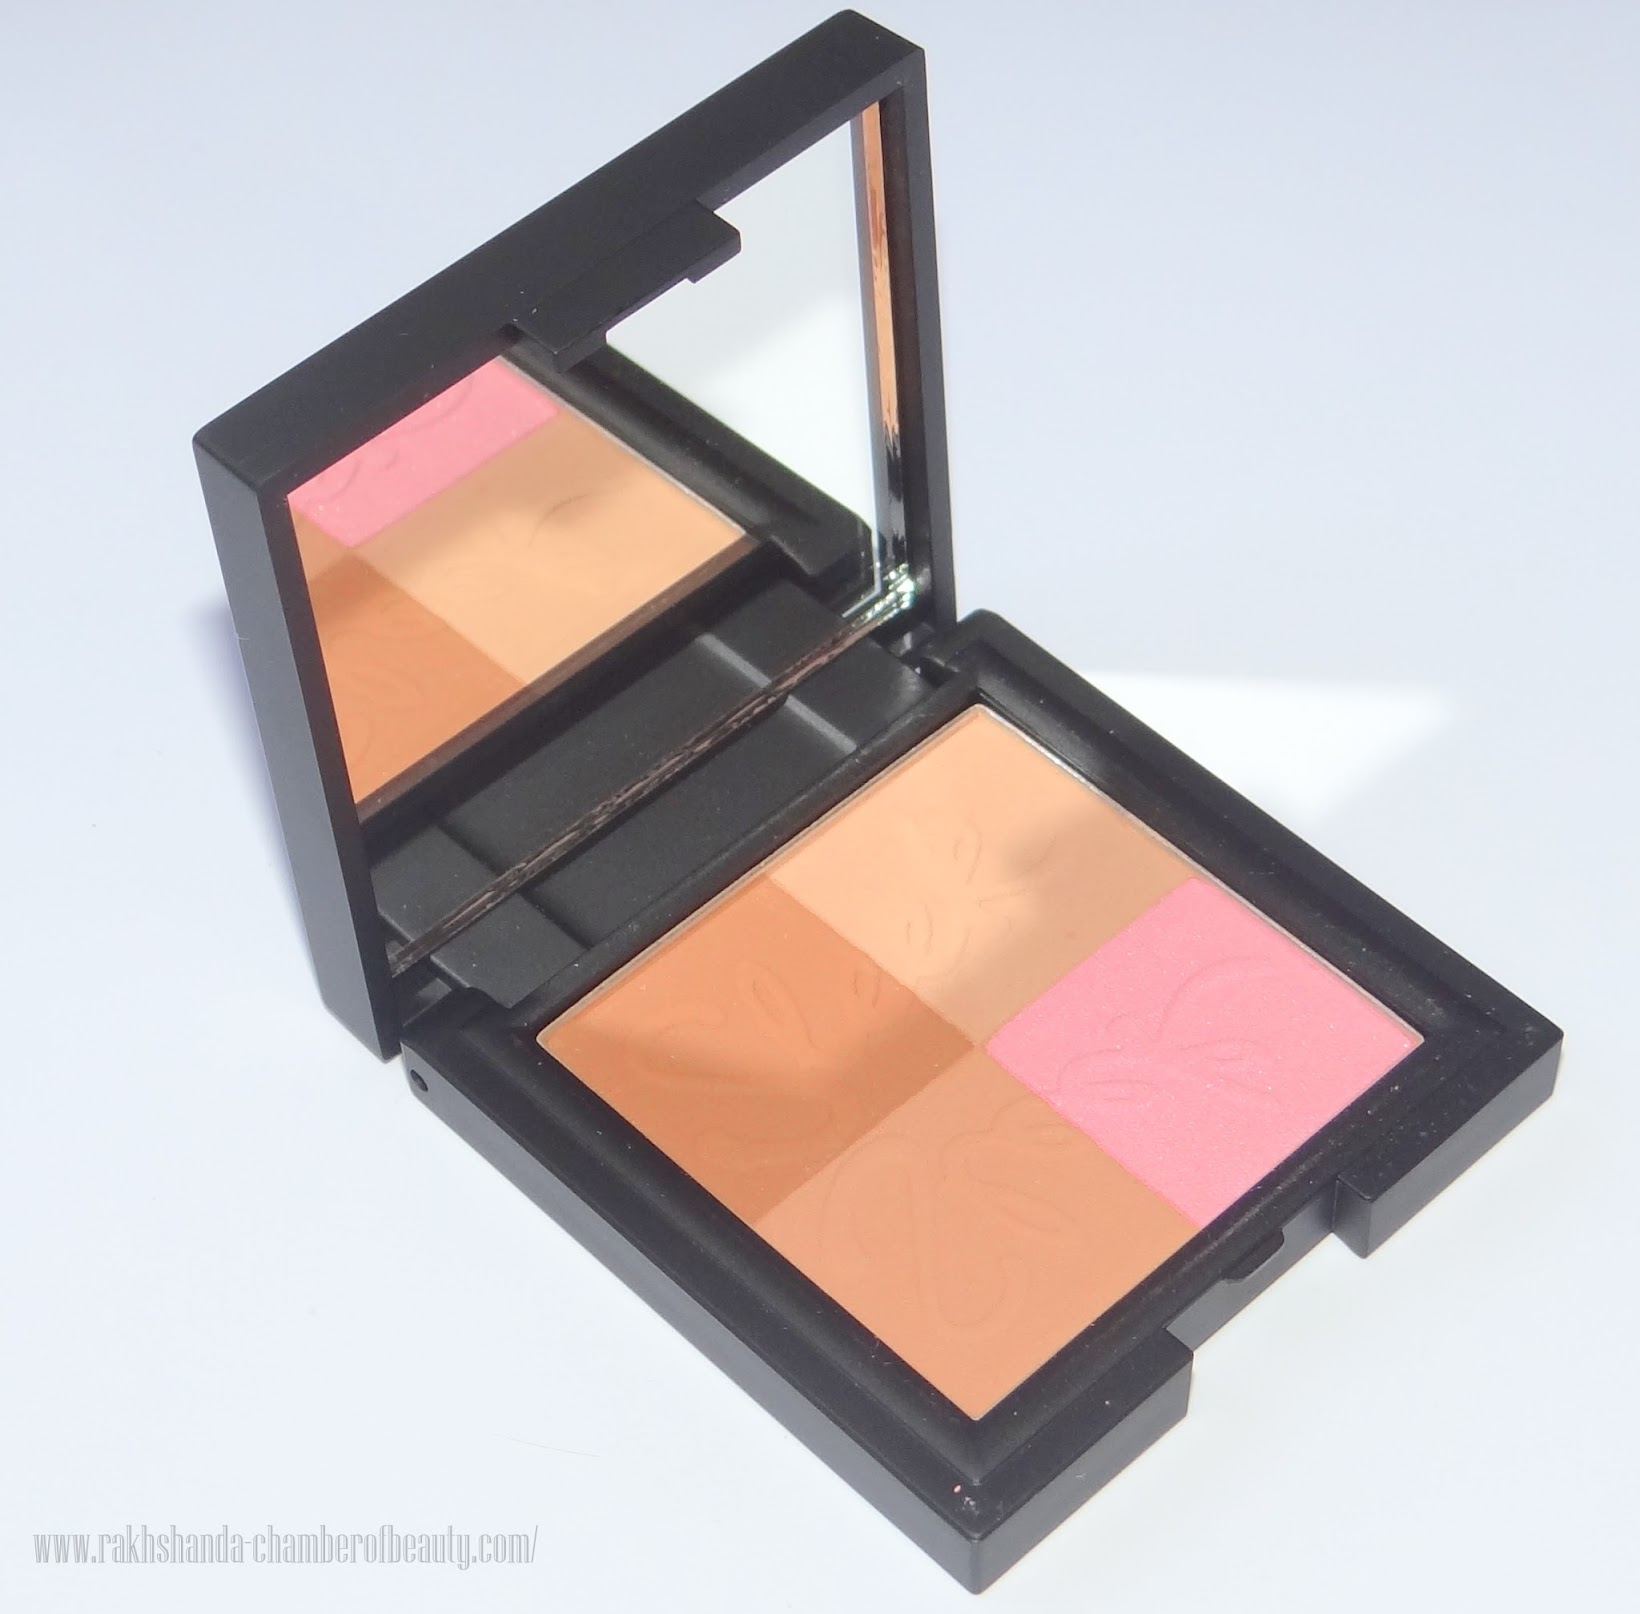 Sleek Makeup Bronze Block (LIGHT) Review, Photos & Swatches, Best drugstore bronzer, Indian beauty blogger, Chamber of Beauty